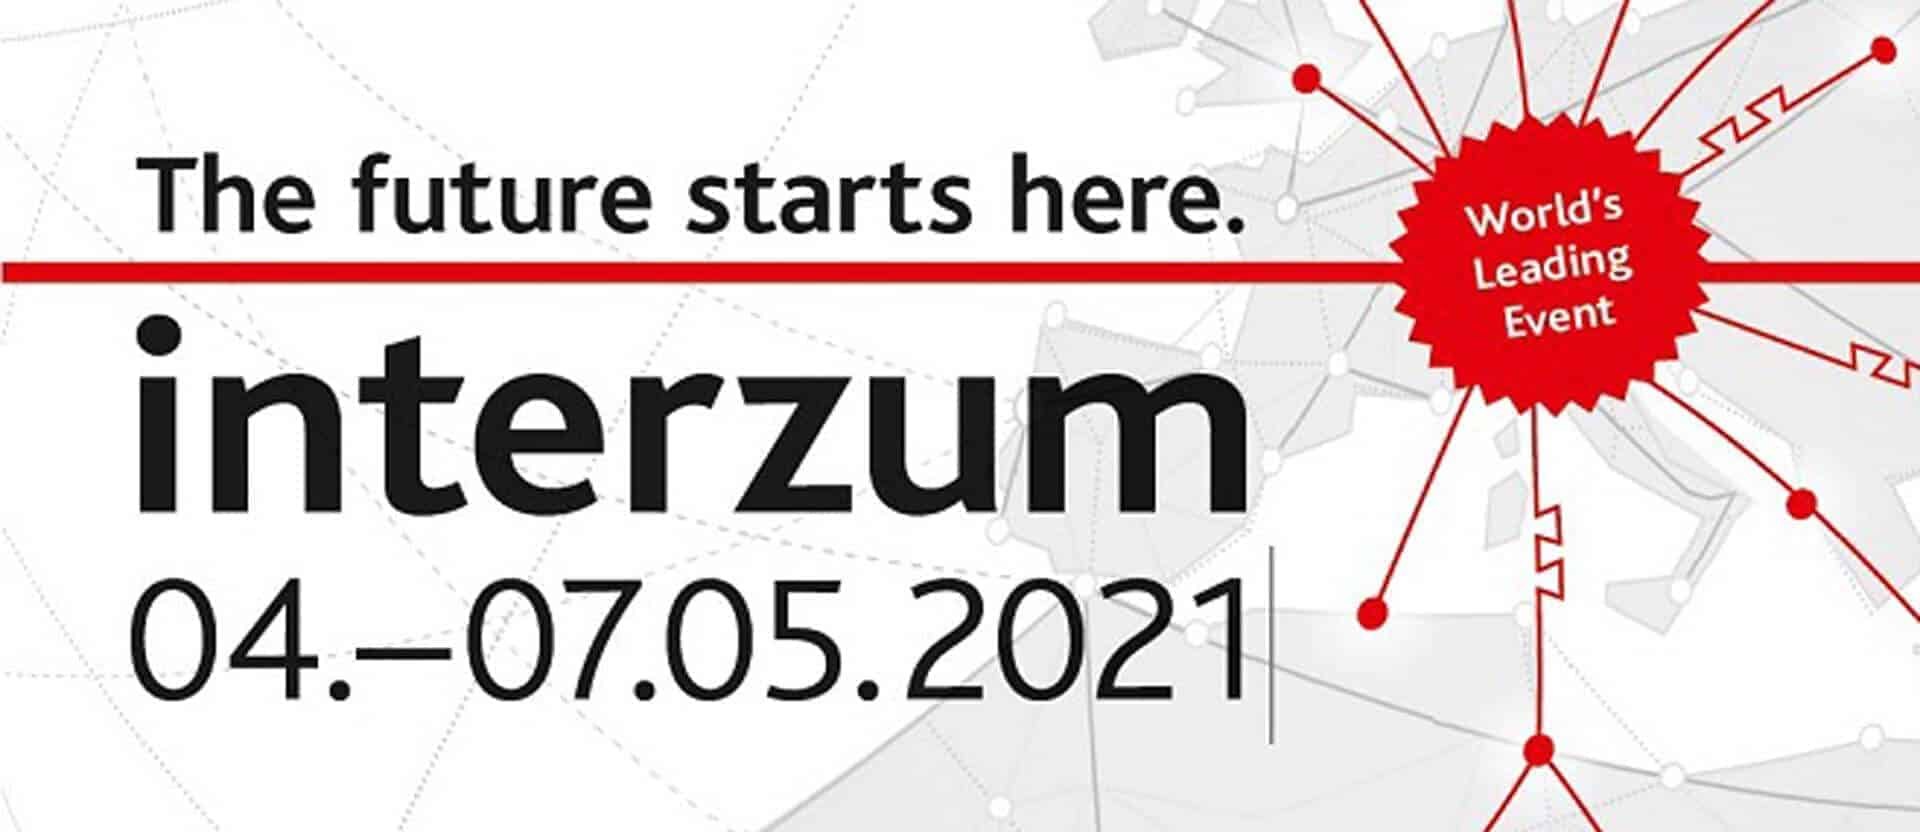 Interzum 2021, Cologne, Germany